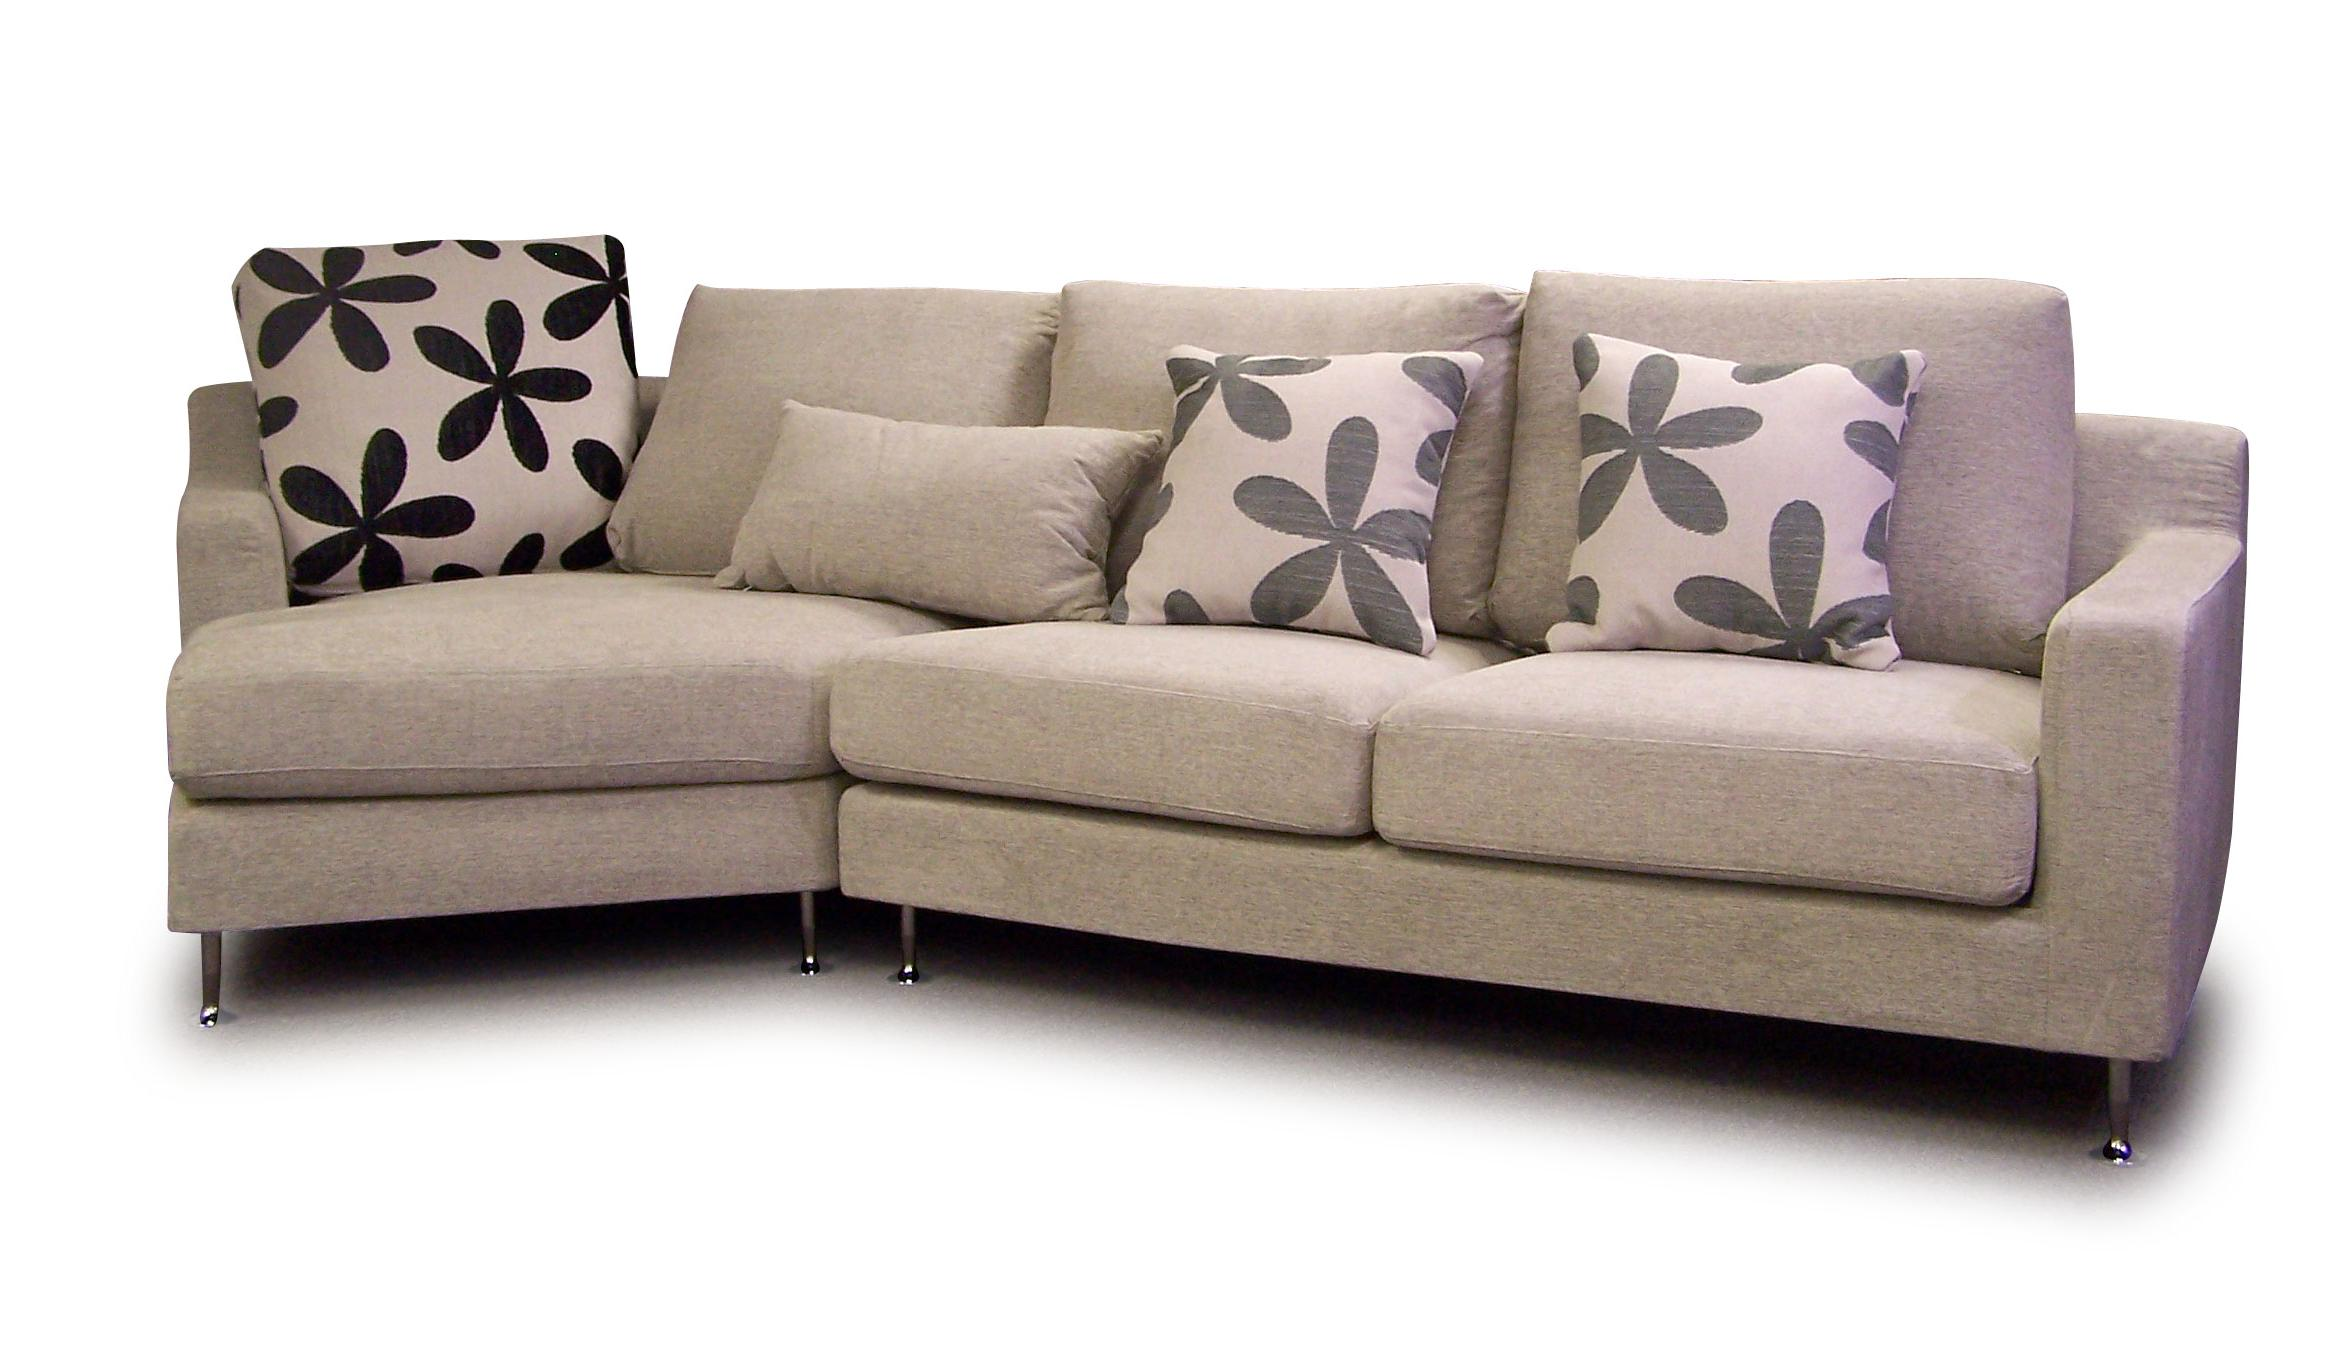 Soft Comfortable And Cute Cheap Sofas And Couches